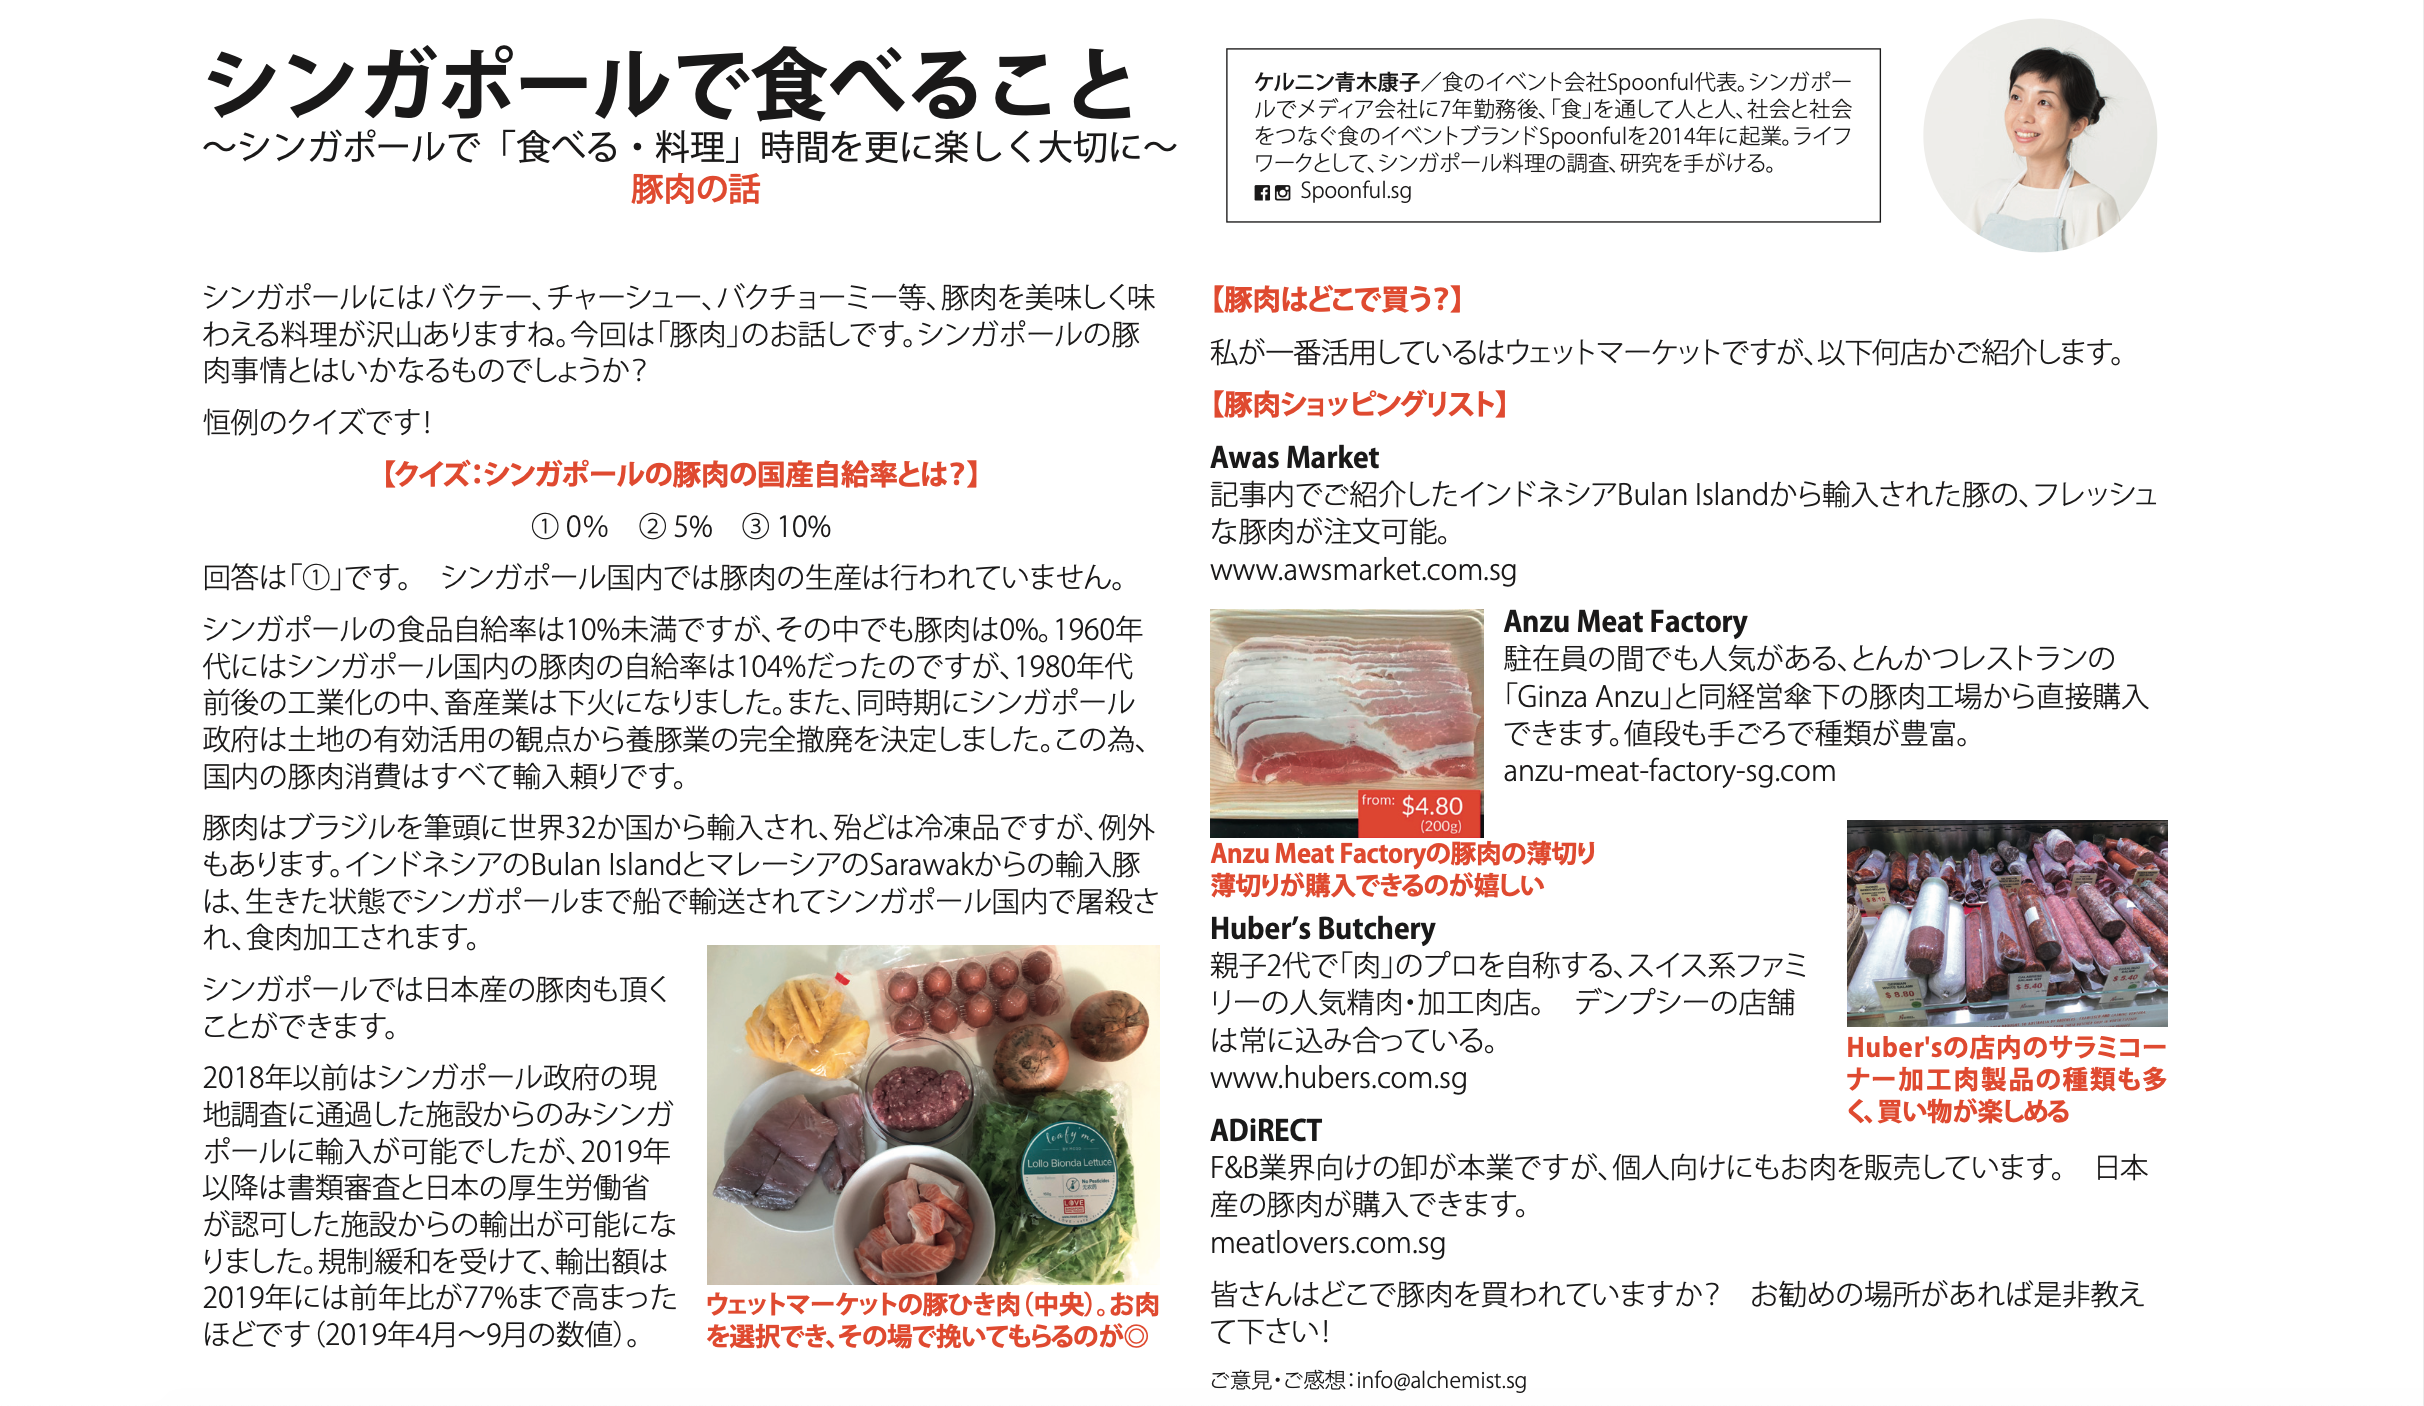 J+PLUS – Eating in Singapore, Issue 11 November 2020